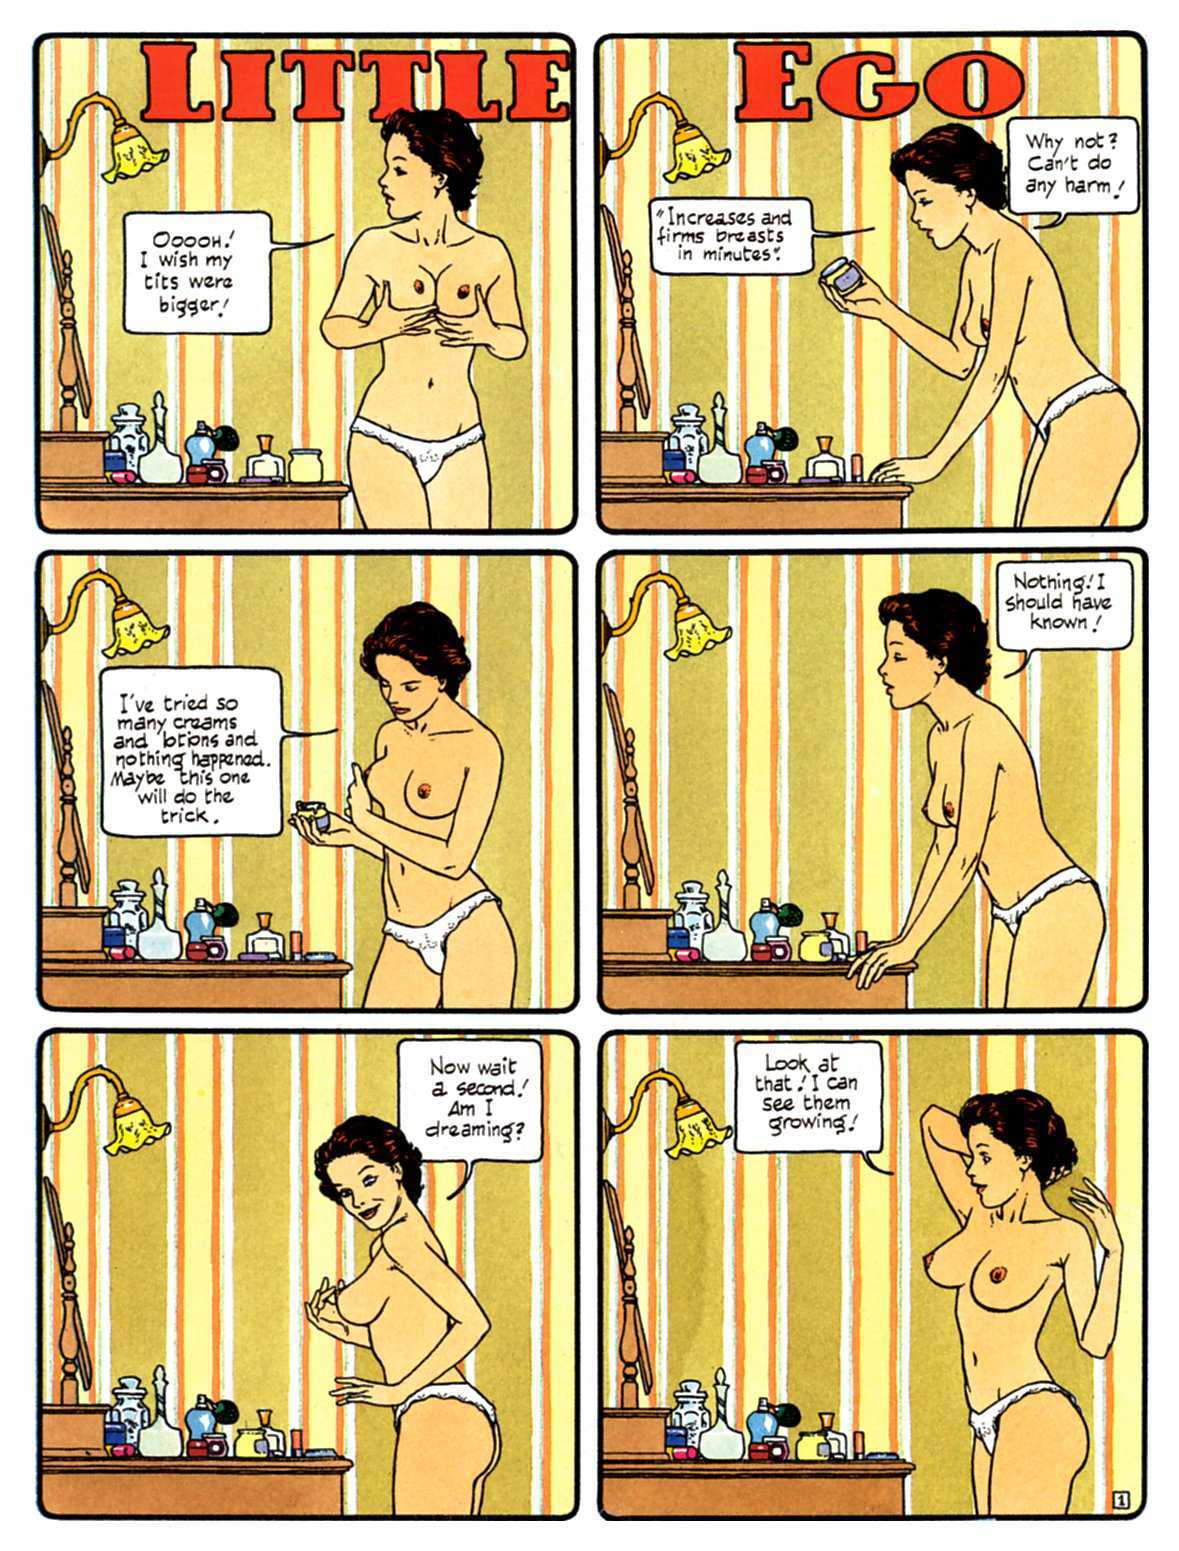 Little Ego13 free sex comic